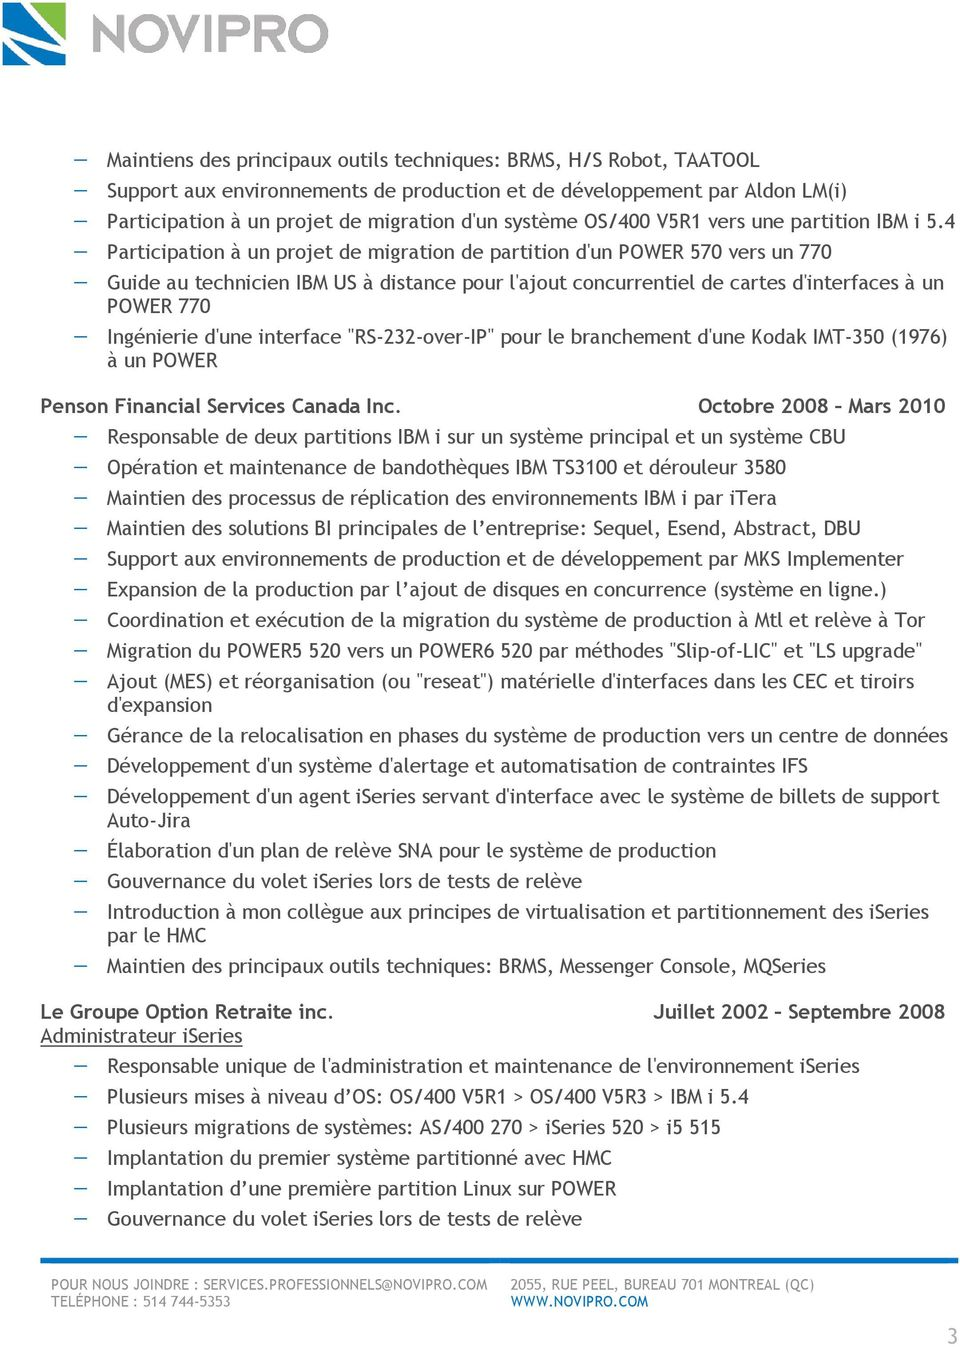 4 Participation à un projet de migration de partition d'un POWER 570 vers un 770 Guide au technicien IBM US à distance pour l'ajout concurrentiel de cartes d'interfaces à un POWER 770 Ingénierie